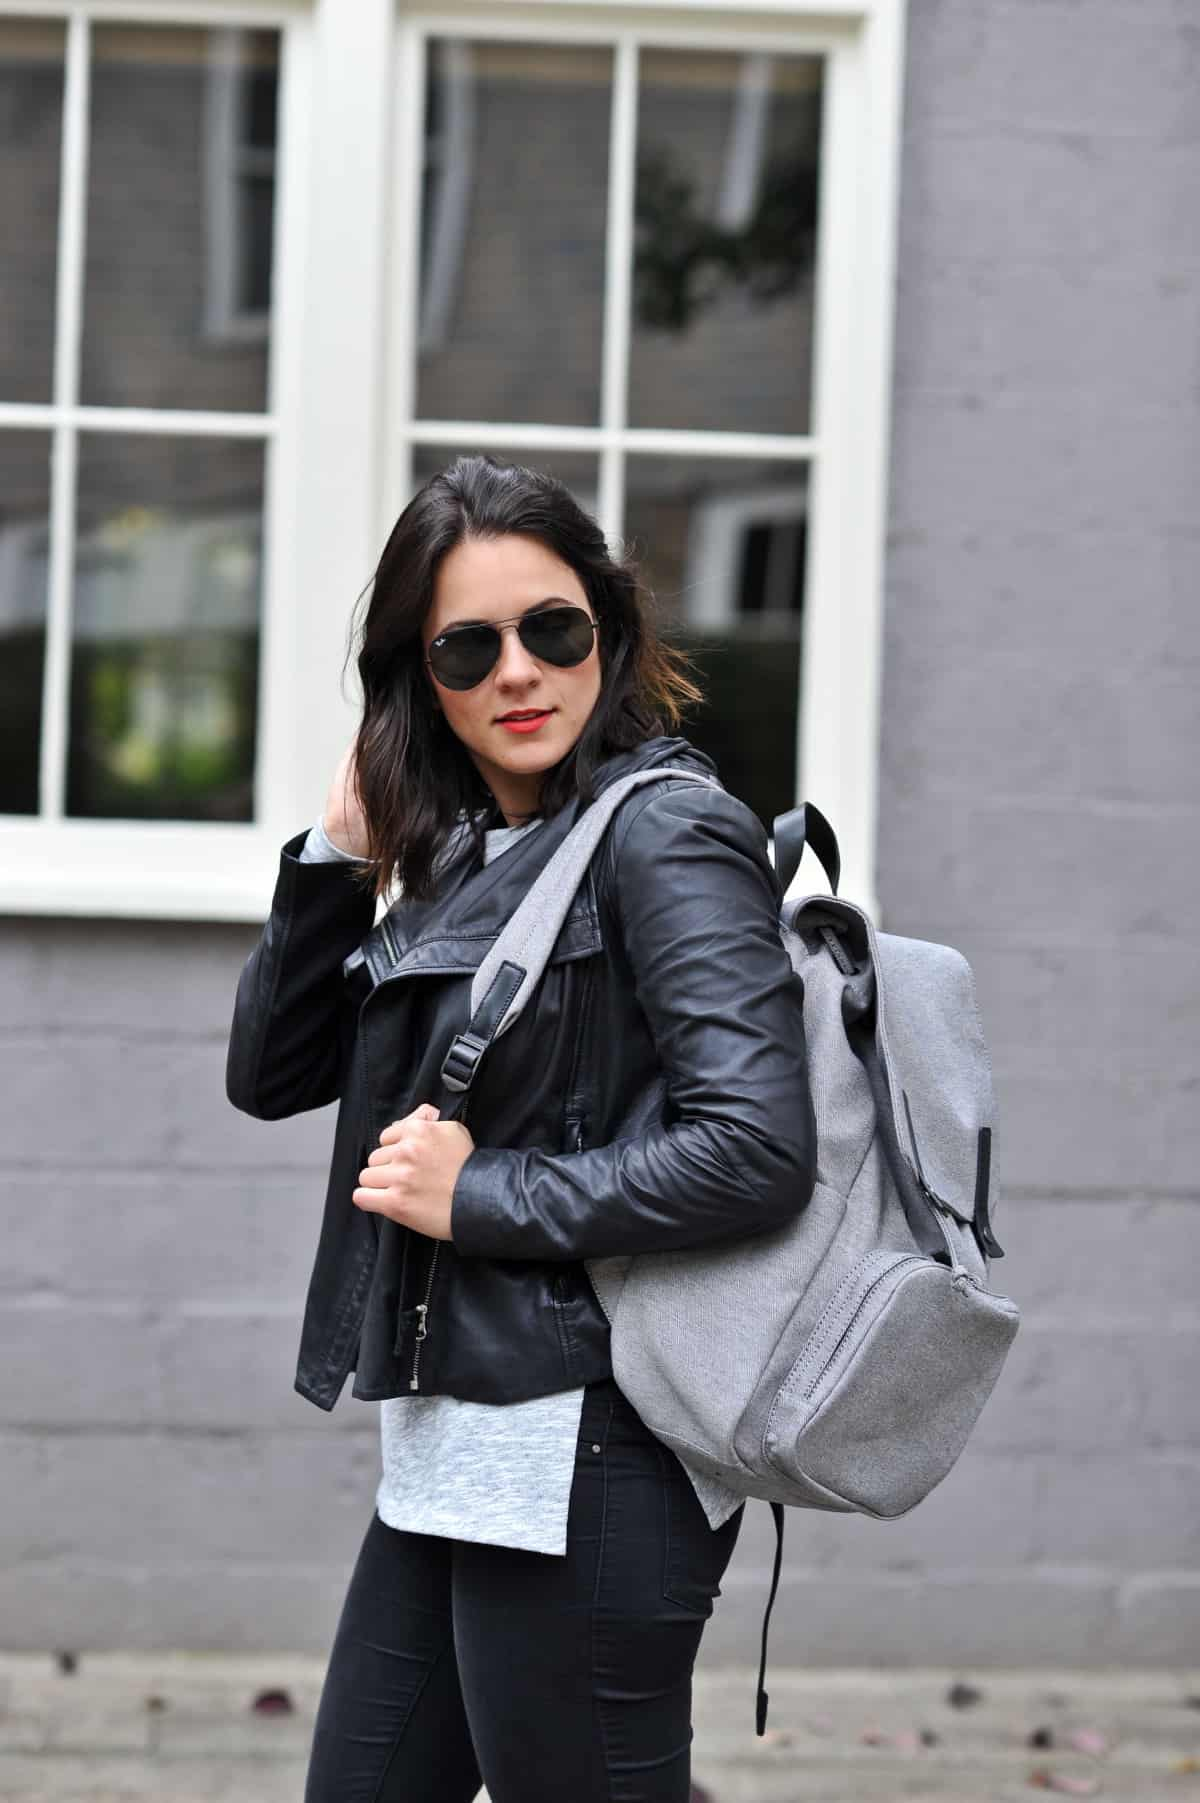 Black and grey outfit, how to style a backpack, casual outfit ideas via @mystylevita